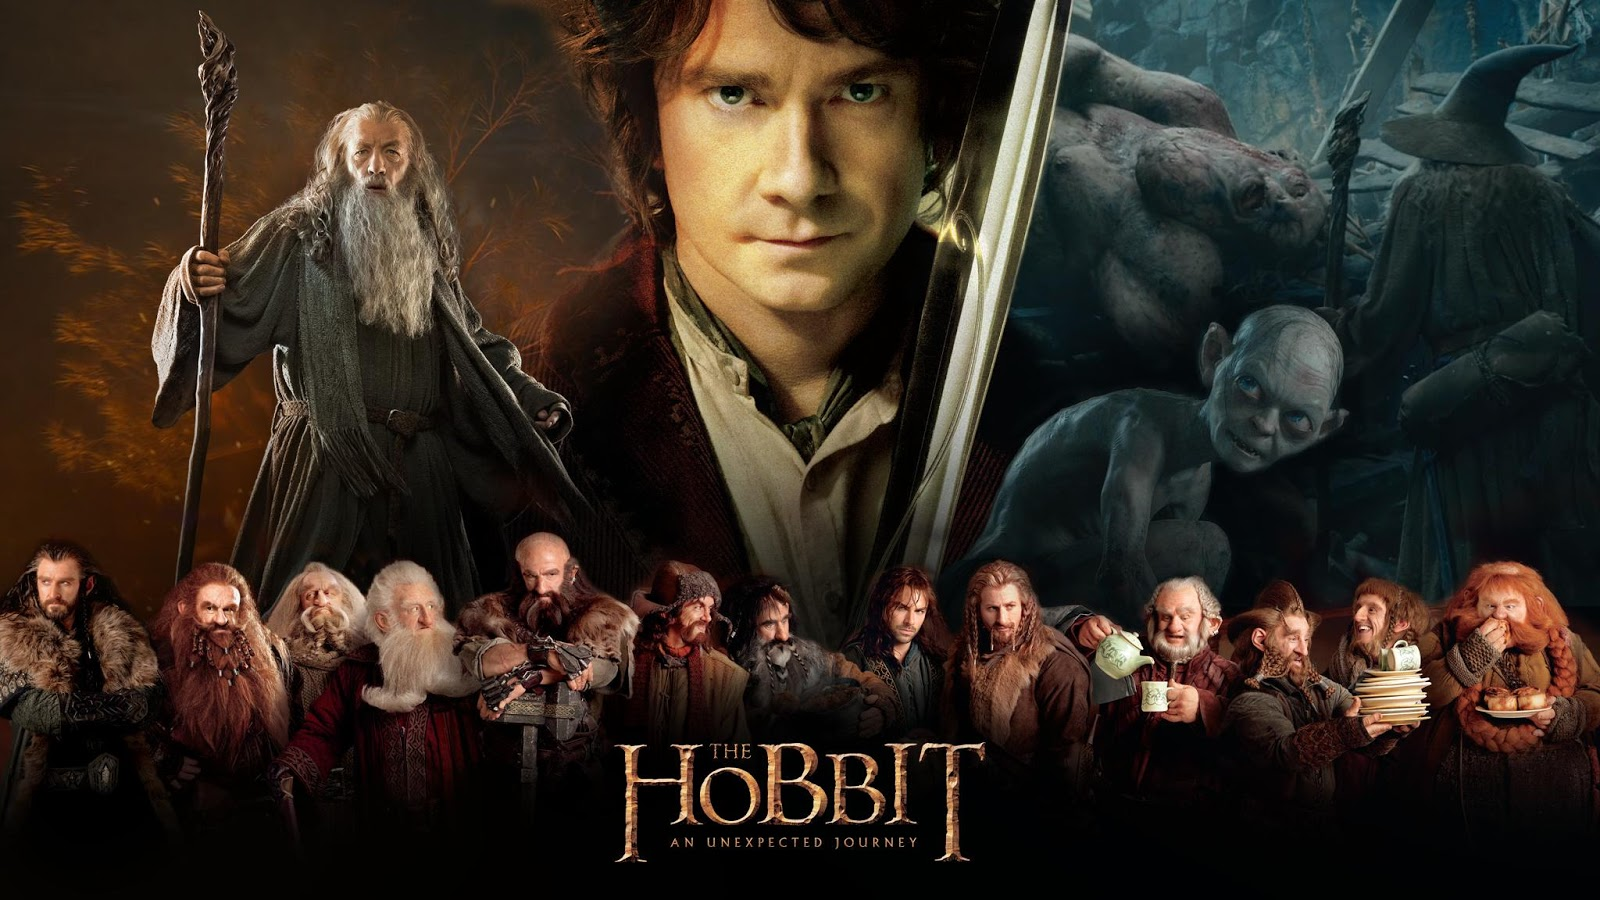 The Hobbit: An Unexpected Journey 2012 movie